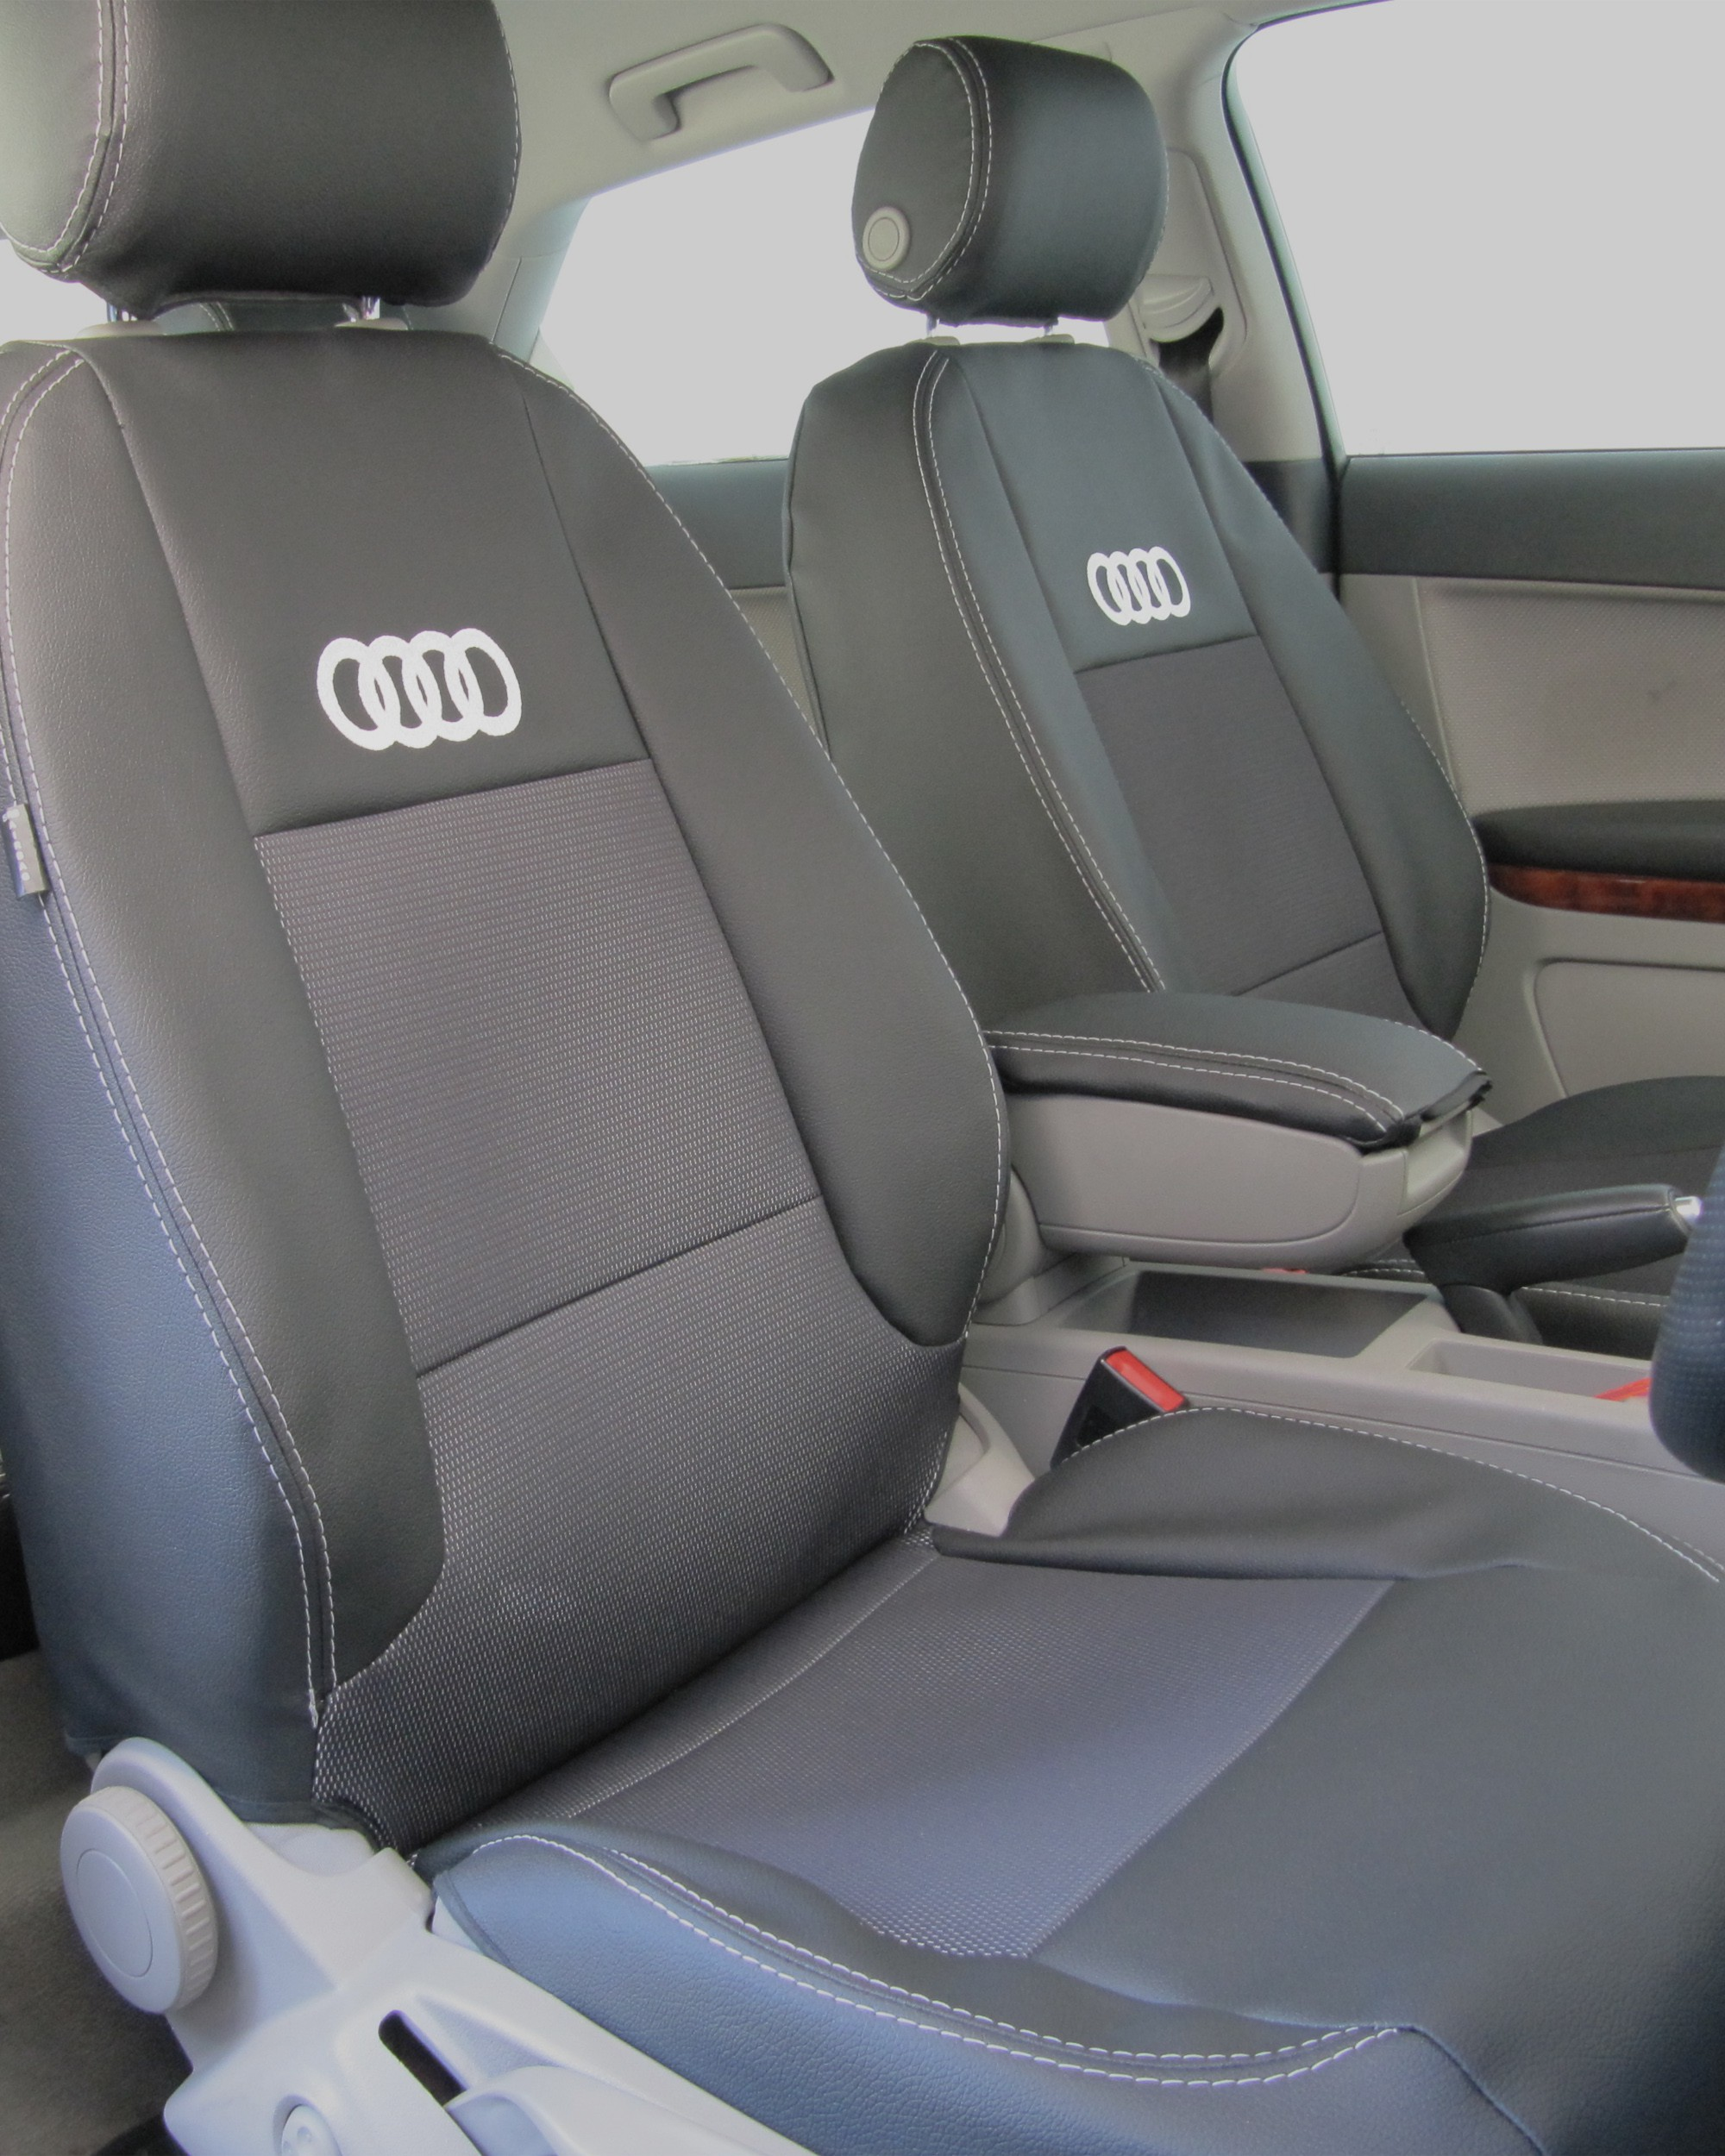 Car Seat Covers Fit Audi A6 Full Set Black Silver Vehicle Parts Accessories Car Accessories